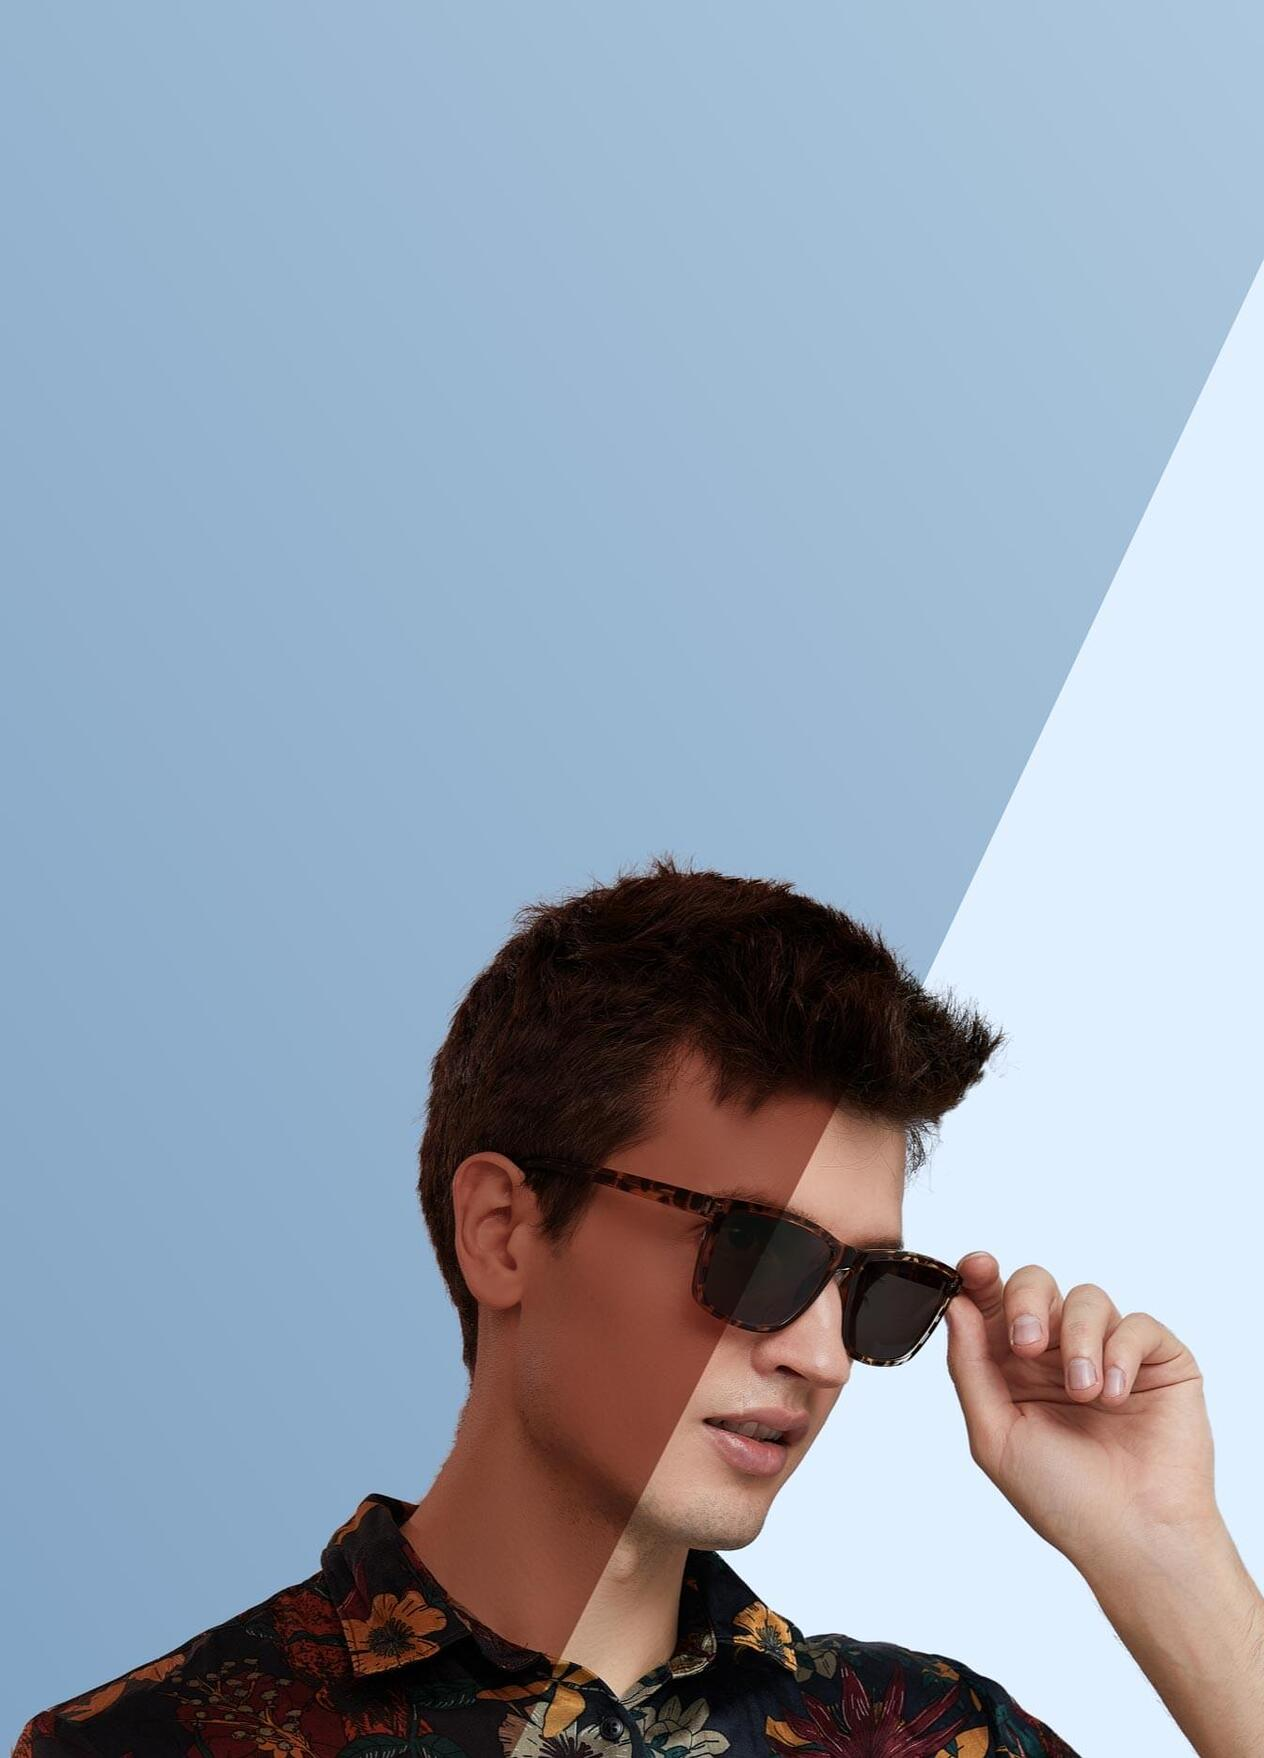 Polarized sunglasses by Yesglasses offer 100% UVA/UVB protection and accommodate prescriptions with stylish frames to choose from for women and men.